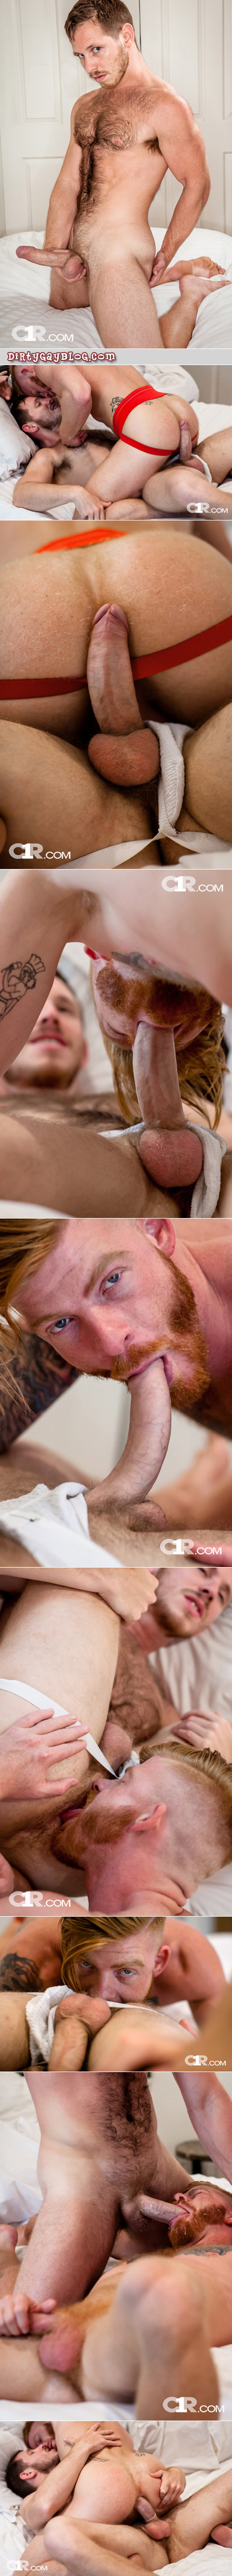 Ginger muscle hunk having gay sex with a hairy stud with a huge cock in jockstraps.